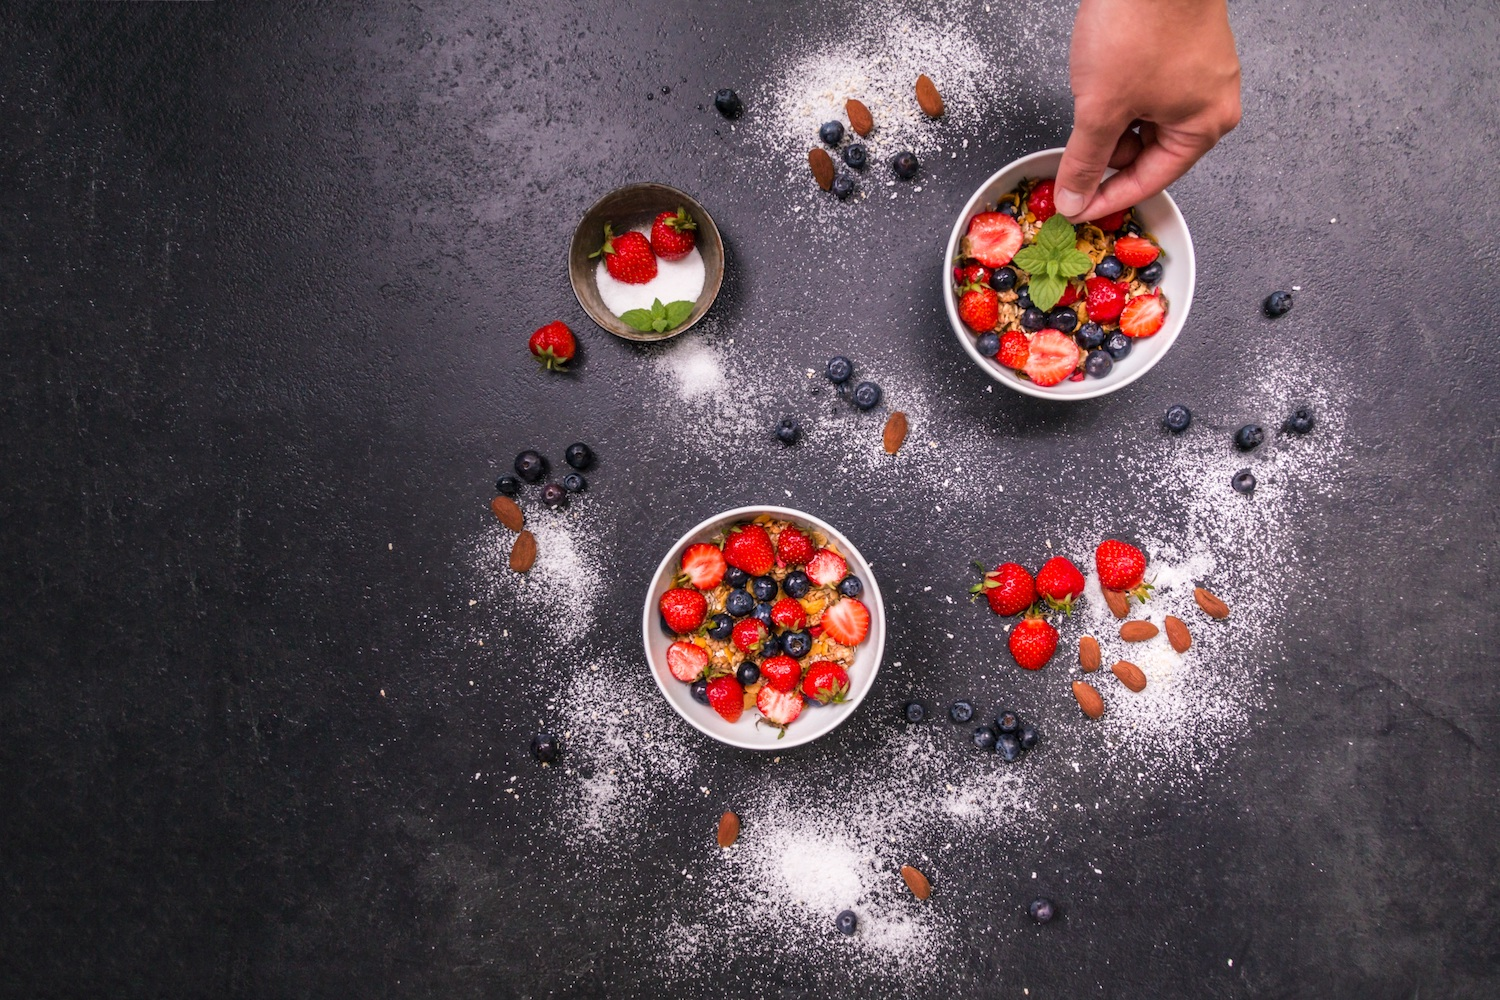 Top view of a person garnishing bowls of mixed fruit